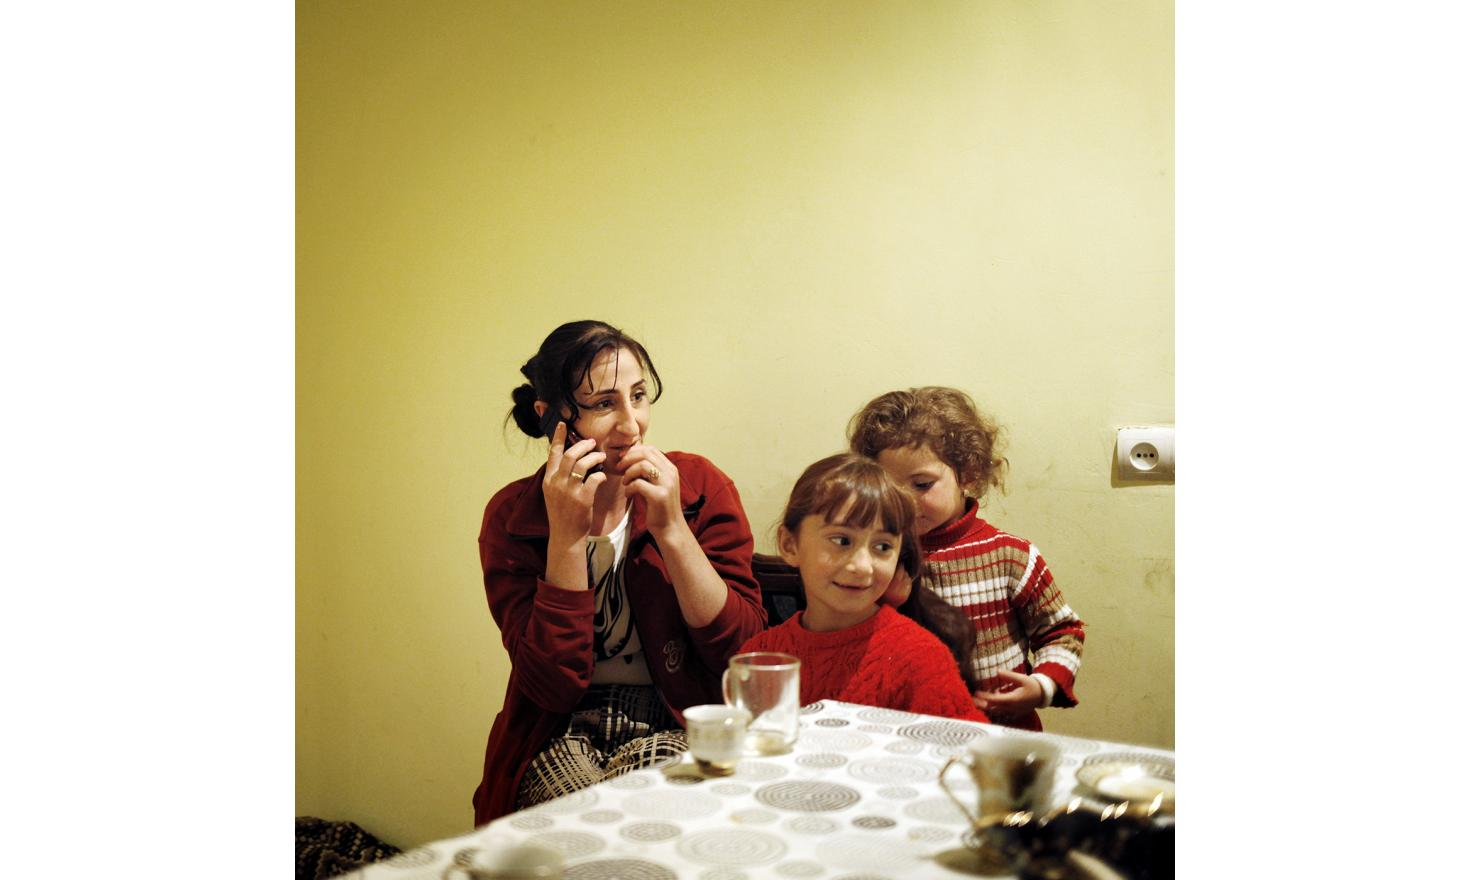 Anoush is calling her husband in Russia. On her the right are her two daughters, Lilith is doing Asmik's hair.